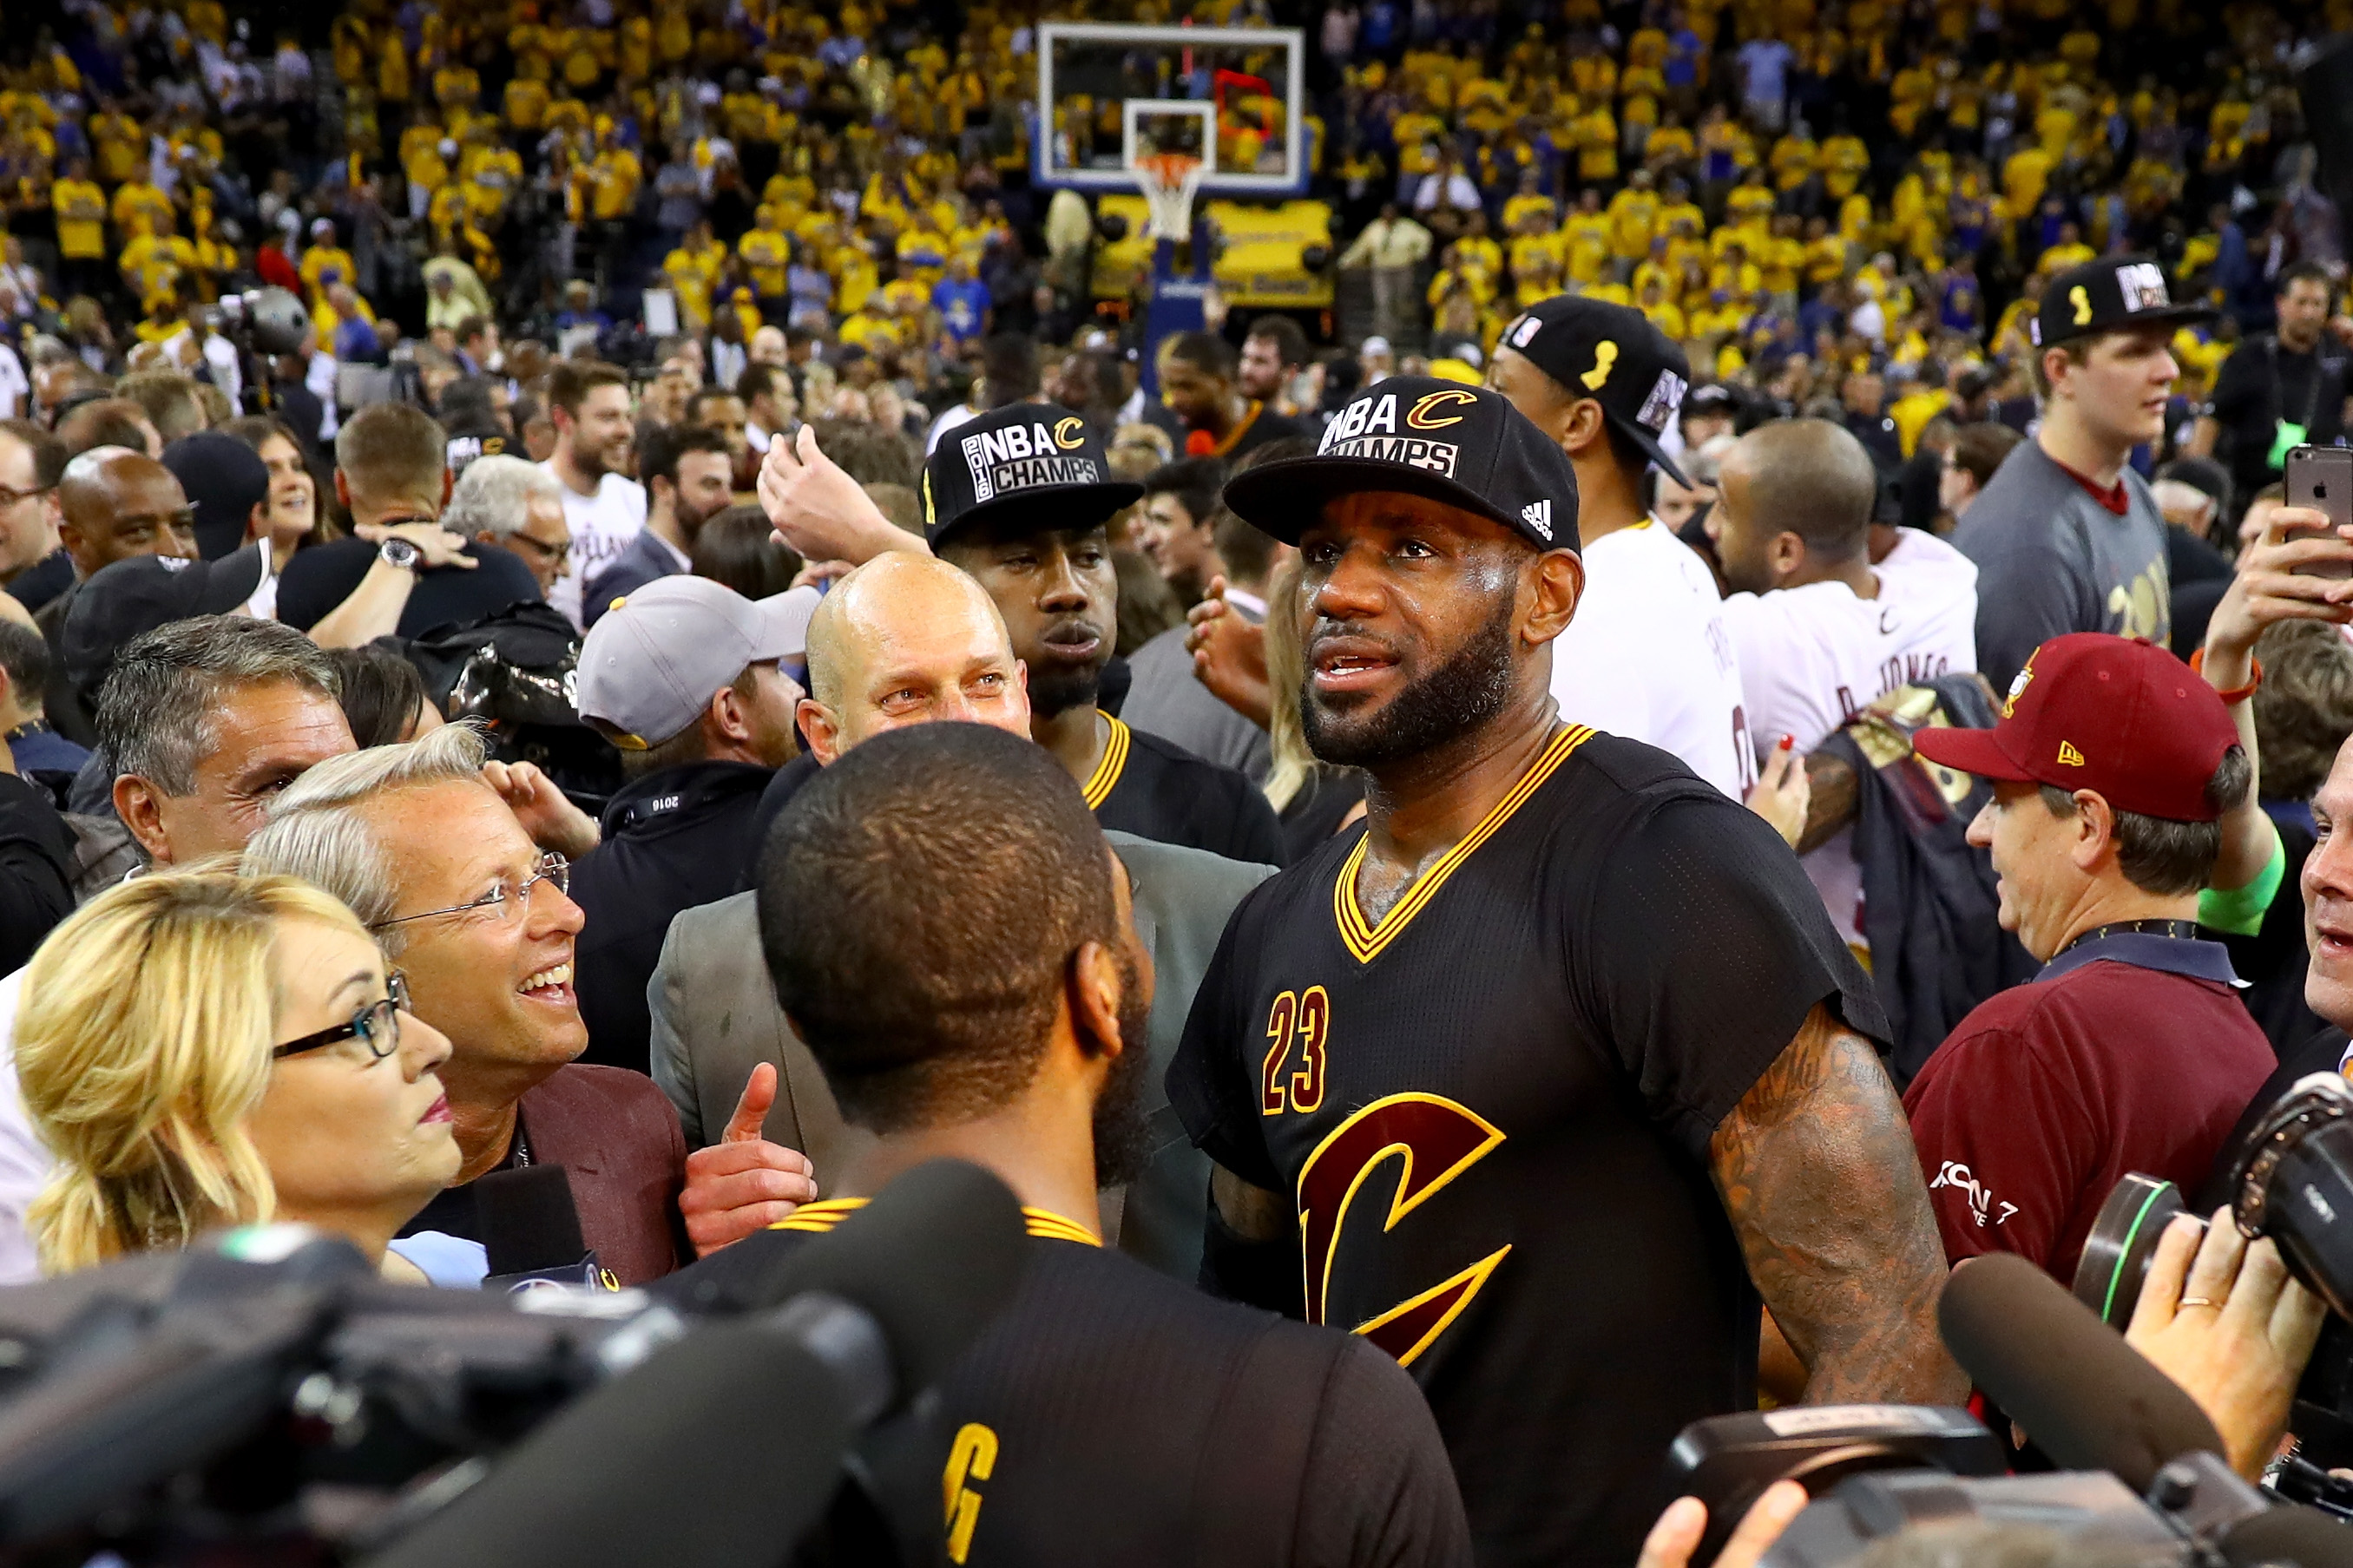 OAKLAND, CA - JUNE 19:  LeBron James #23 of the Cleveland Cavaliers celebrates after defeating the Golden State Warriors 93-89 in Game 7 of the 2016 NBA Finals at ORACLE Arena on June 19, 2016 in Oakland, California. (Photo by Ezra Shaw/Getty Images)